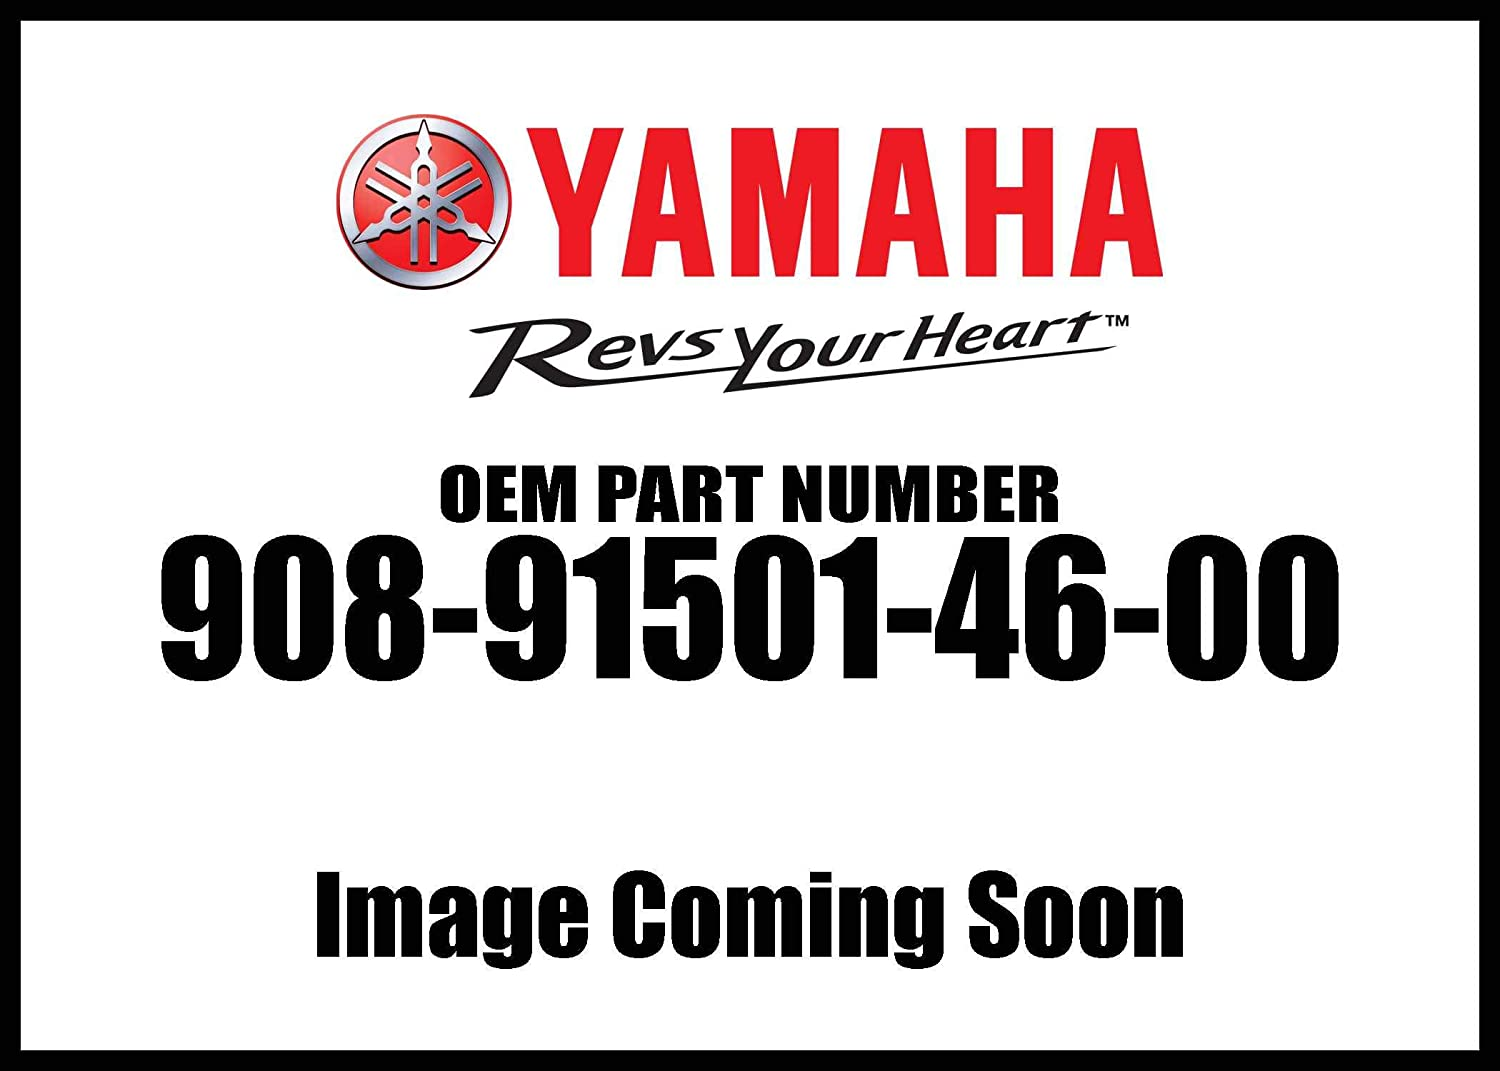 Yamaha 90891-50146-00 Pz50 Ecu Kit; 908915014600 Made by Yamaha